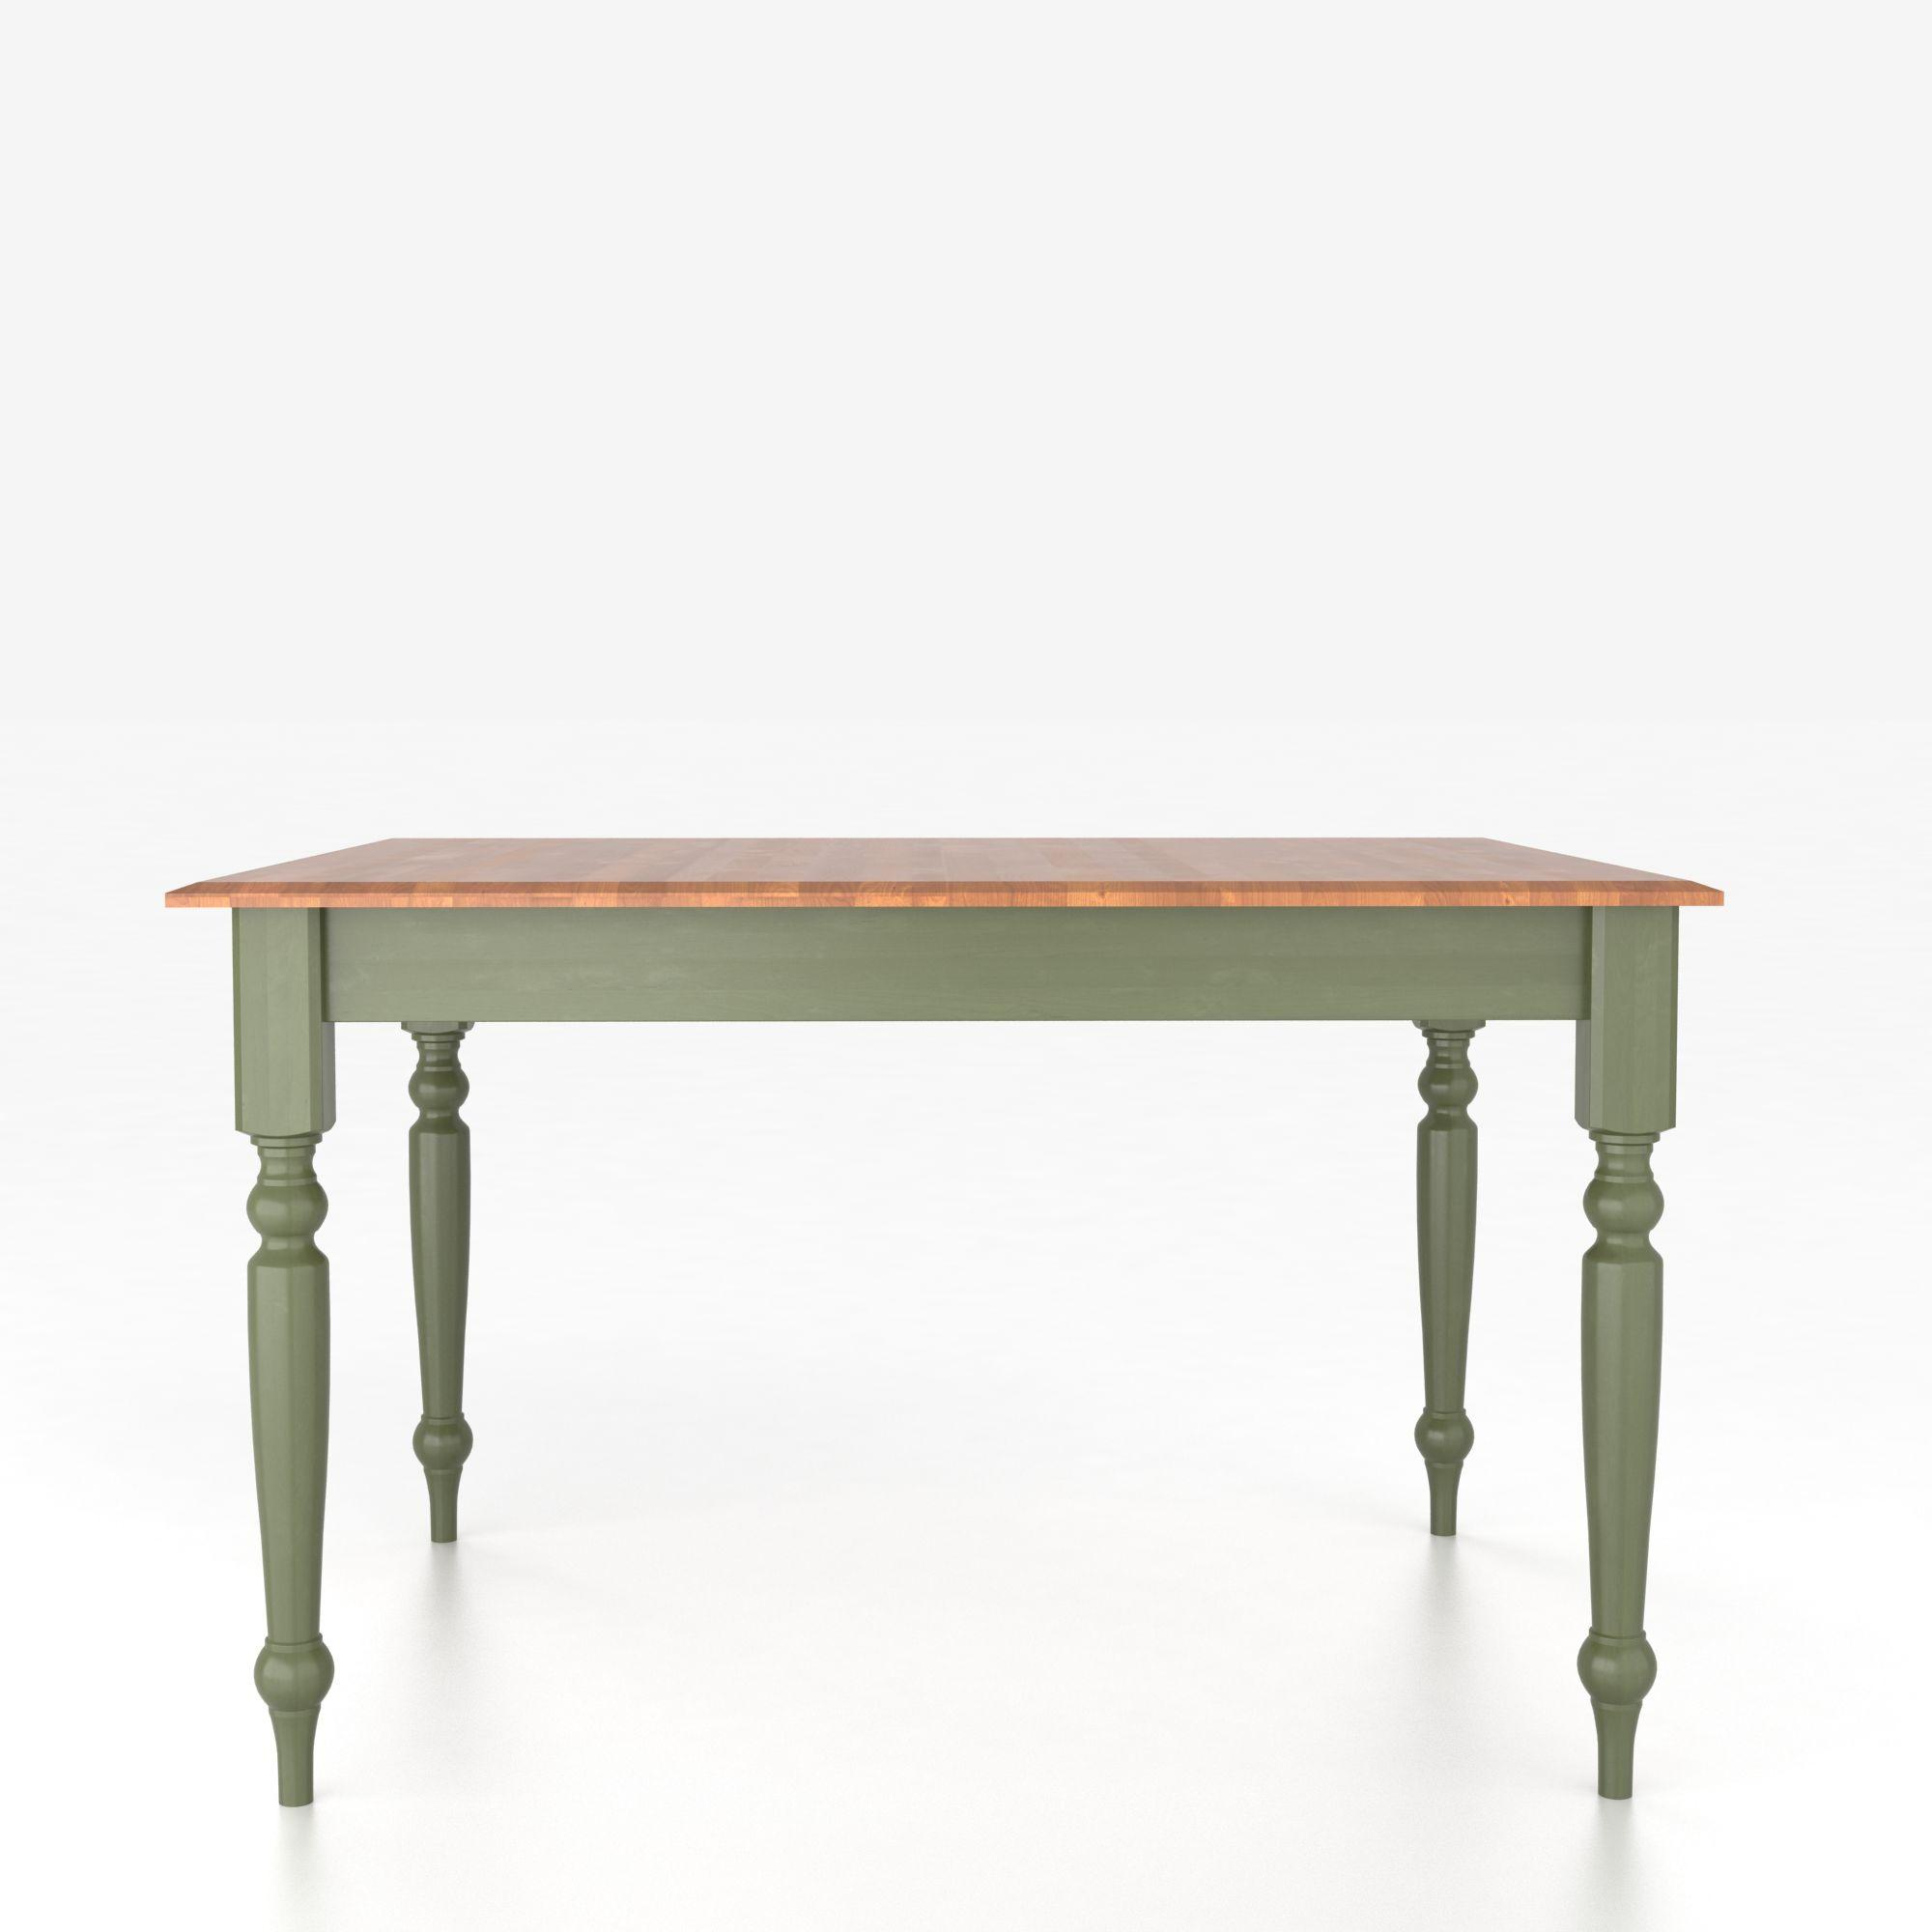 Custom Dining Tables <b>Customizable</b> Square Table with Legs by Canadel at Dinette Depot